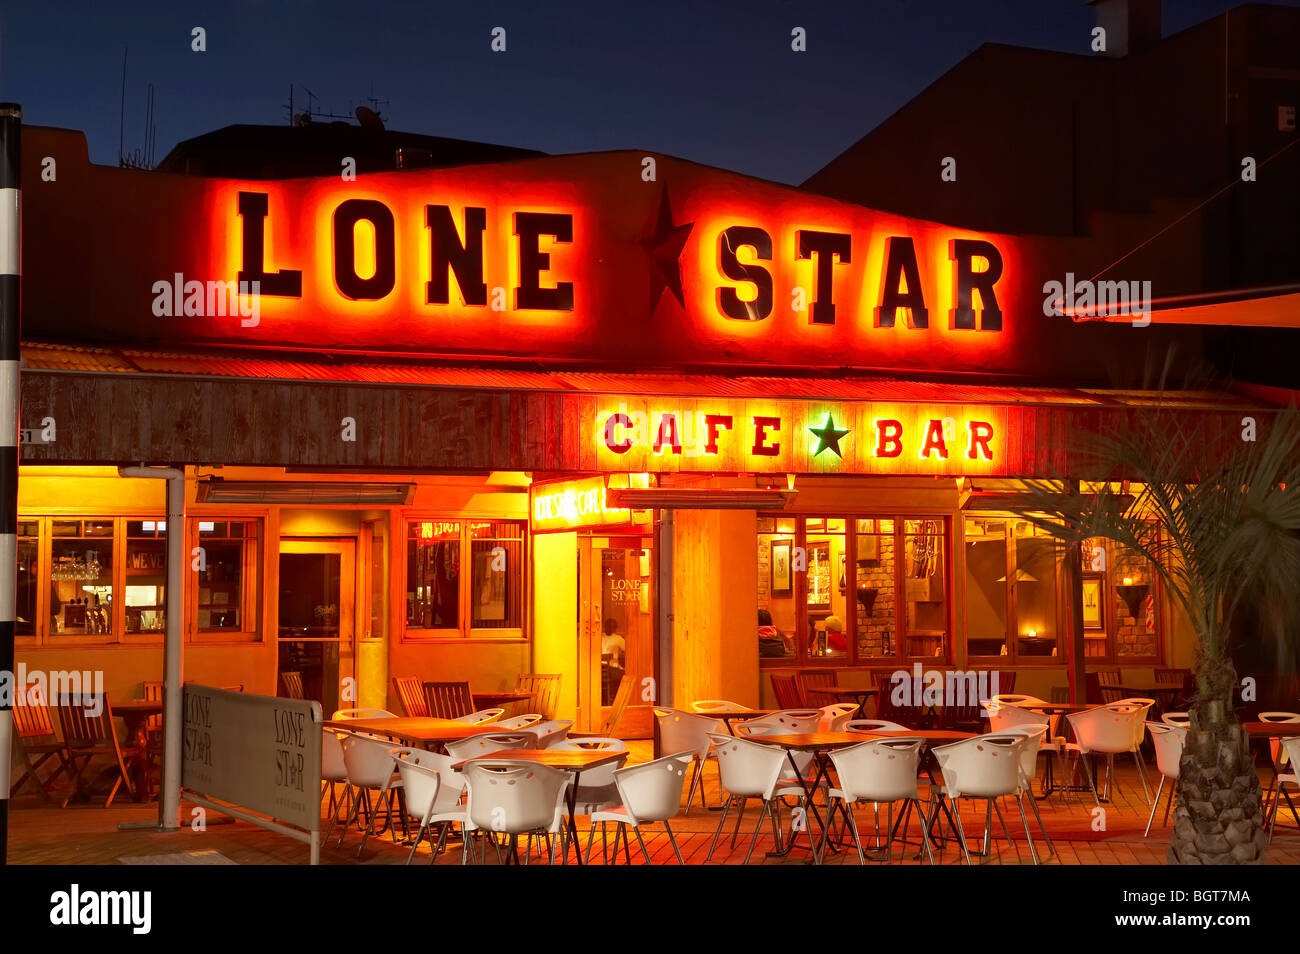 Lone Star Cafe Bar